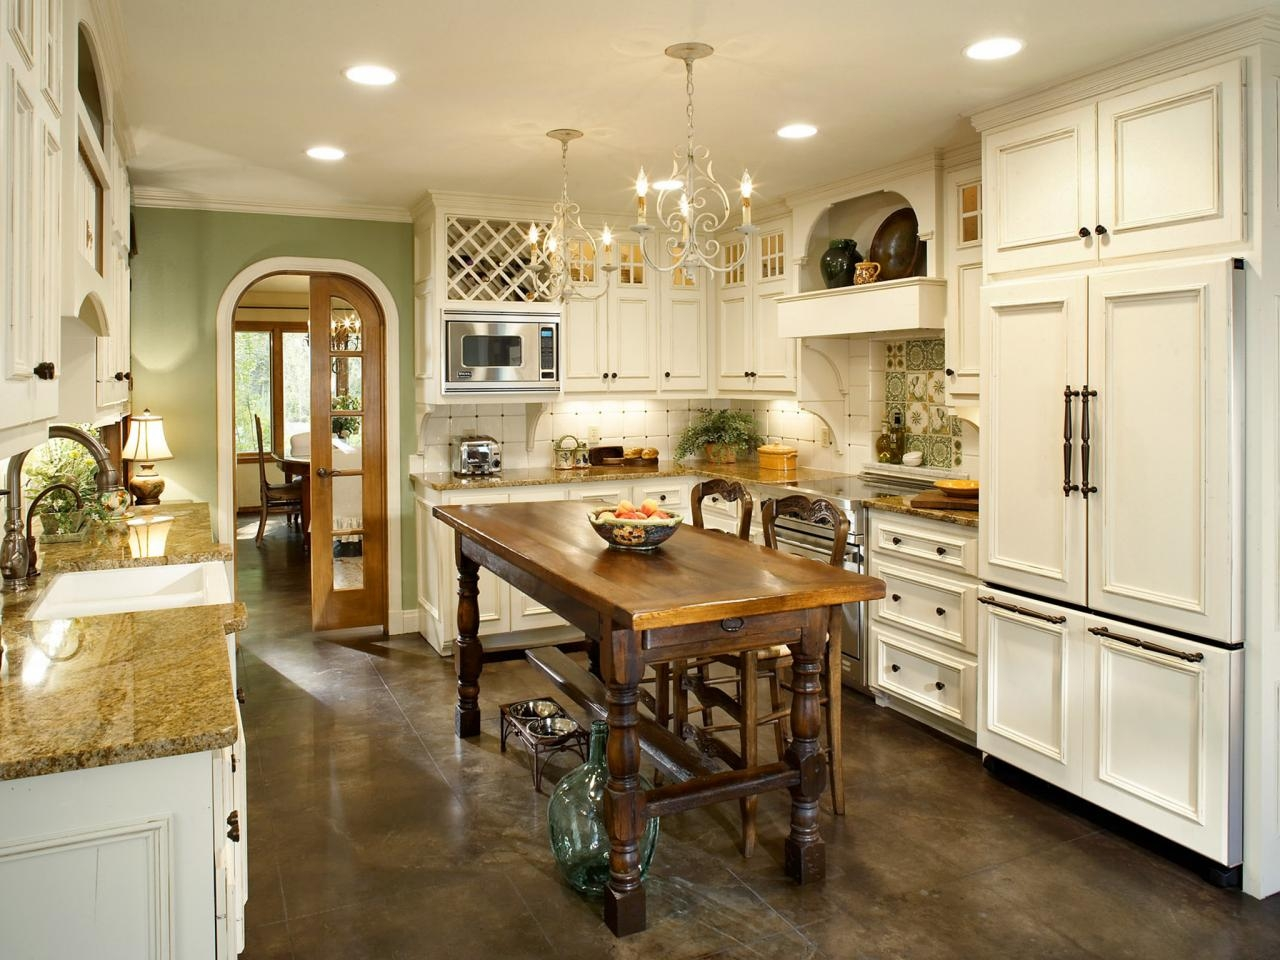 Featured Image of French Country Chandeliers For Kitchen